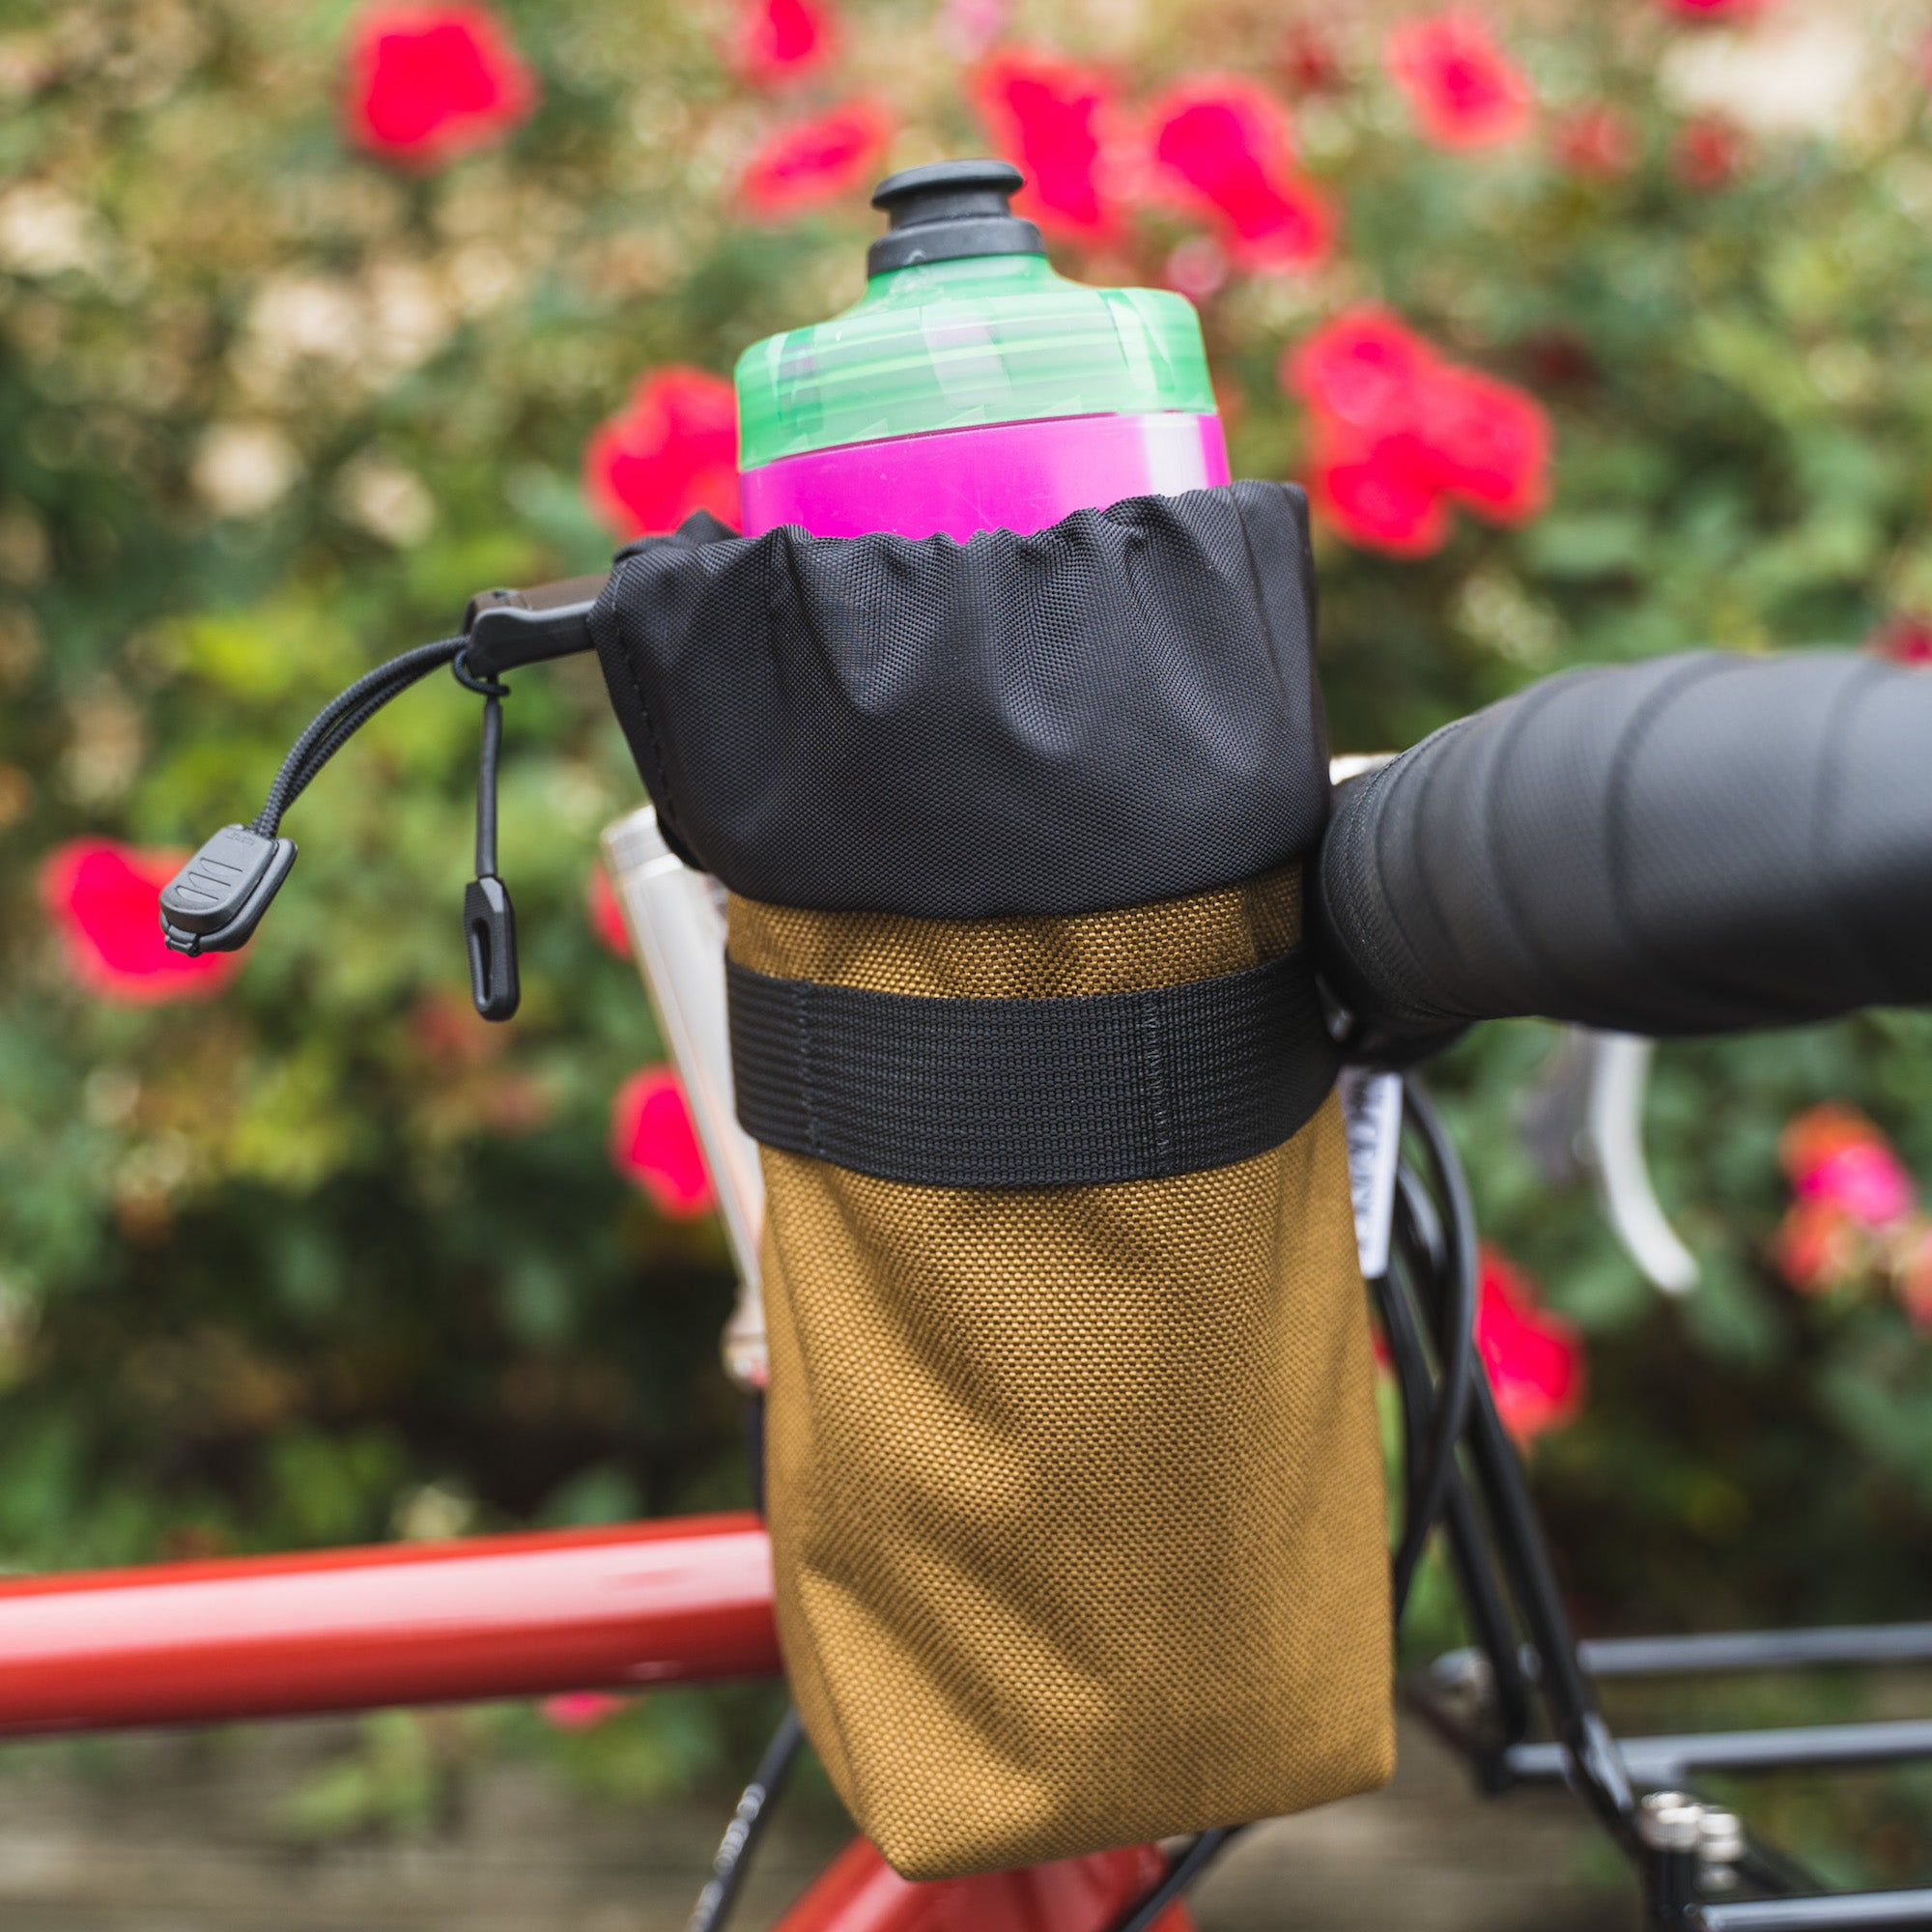 Co Pilot Stem Bag for Bikepacking and Commuting